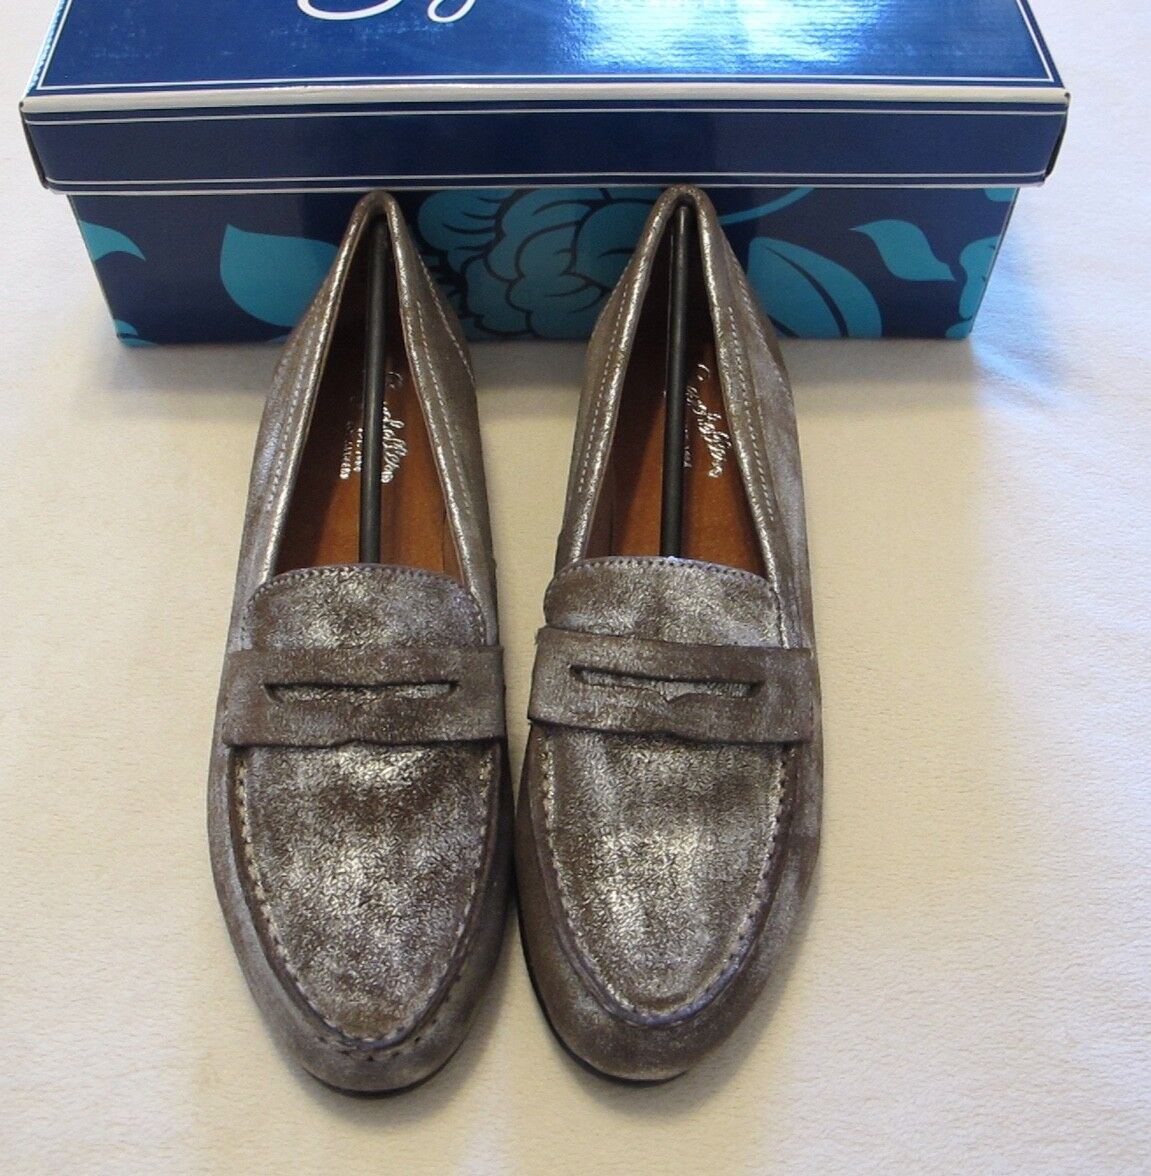 Seychelles Campaign Metallic Pewter Pewter Pewter Loafer size 8 f1519b